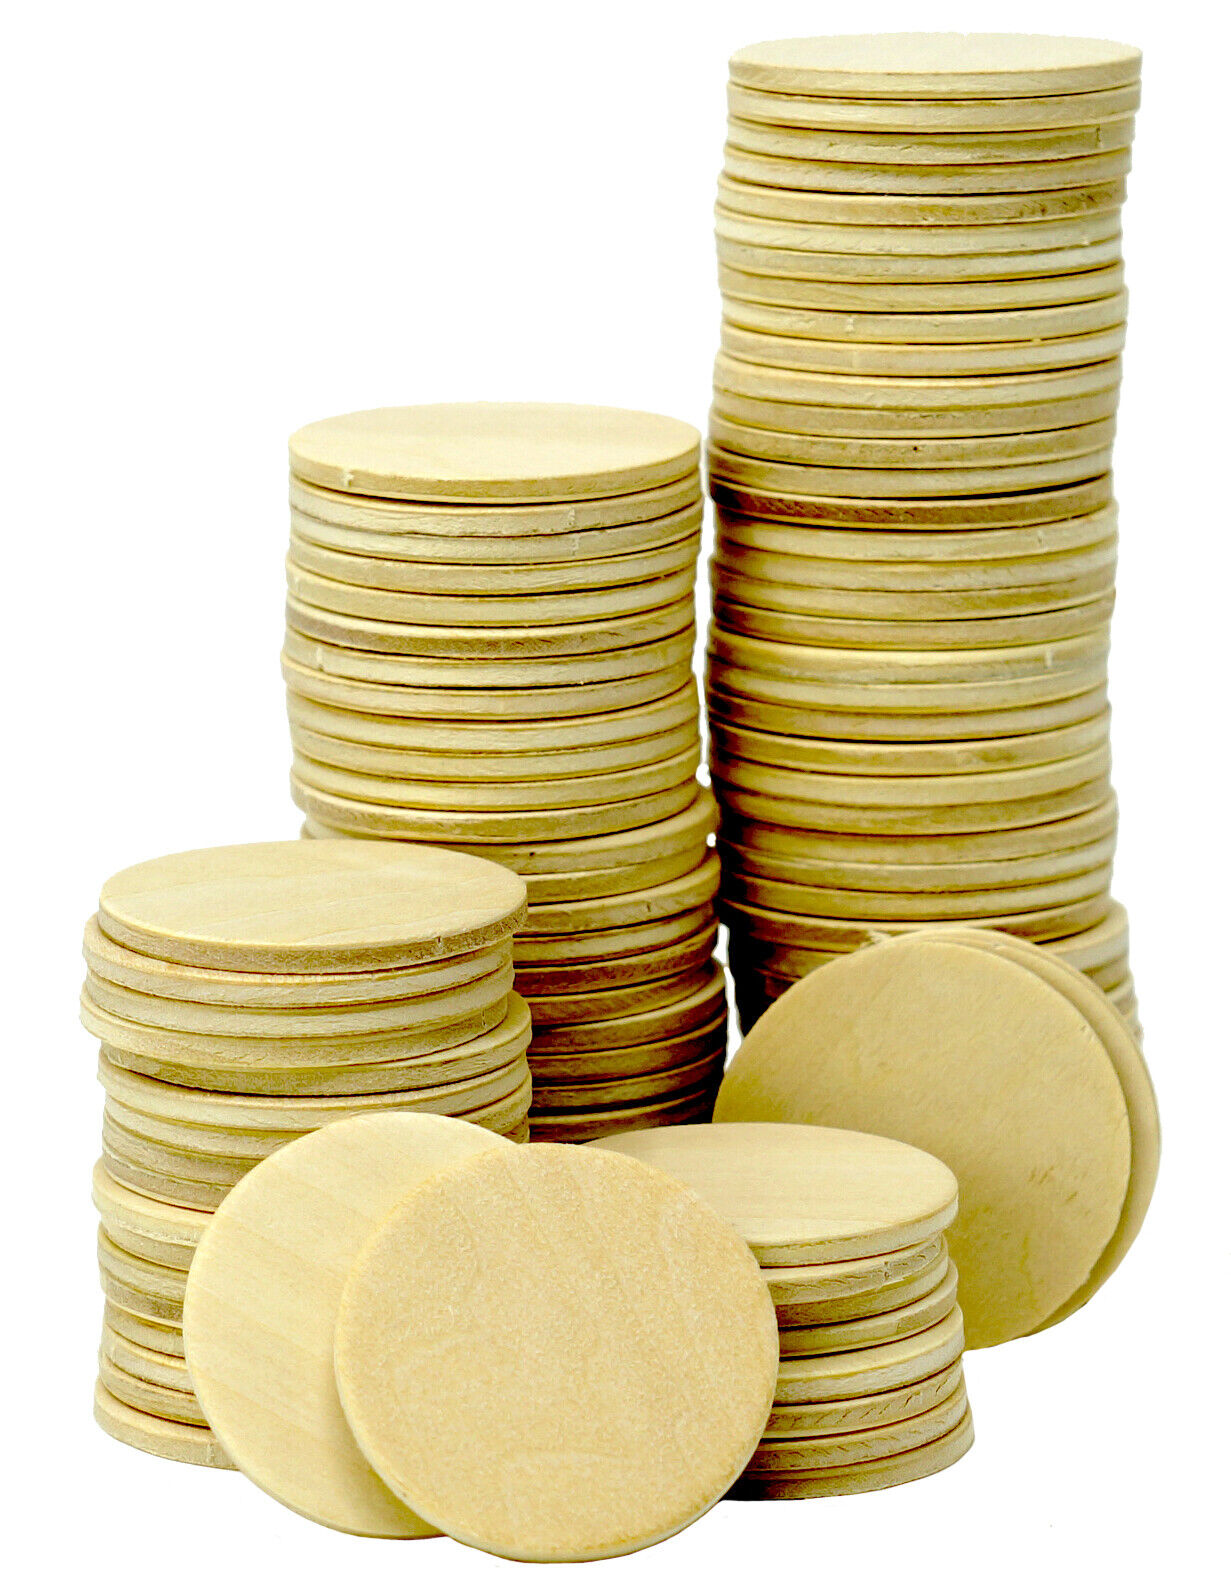 100 Pack -1.5 Inch Round Wood Cutout Circle Chips for Crafts, Games, Ornaments Crafting Pieces